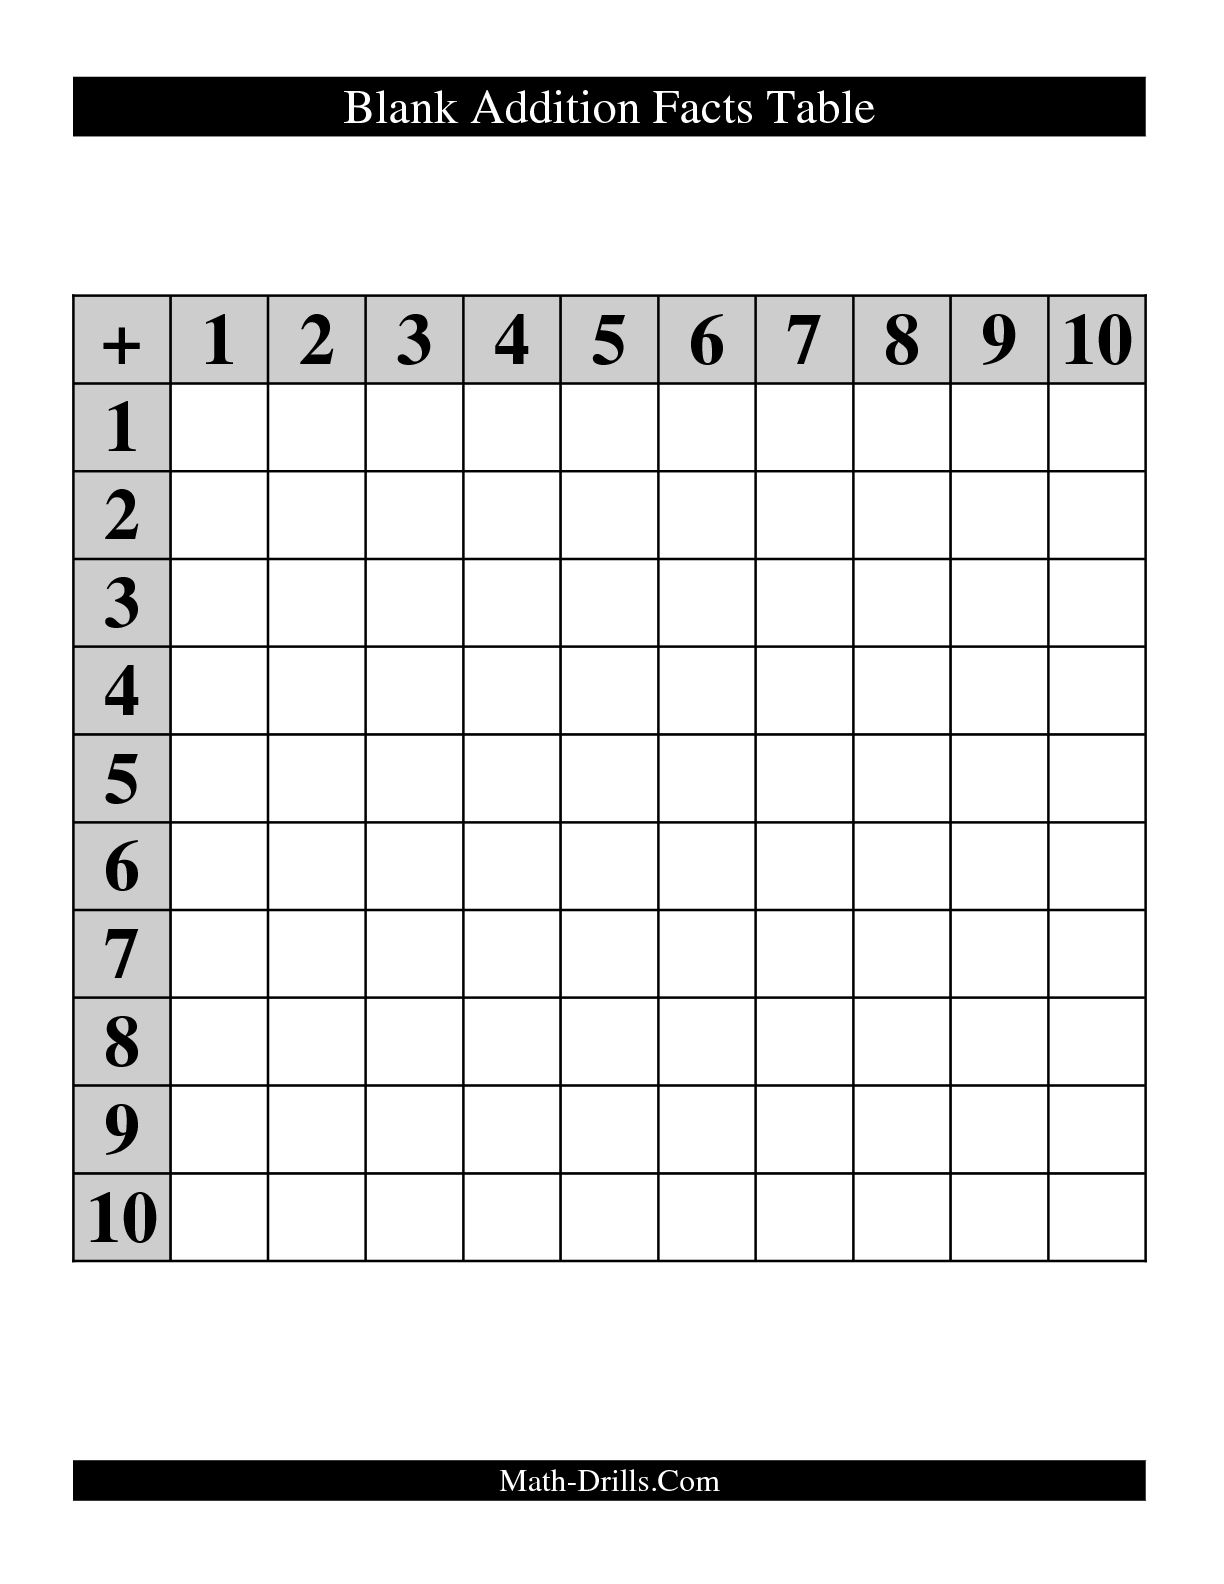 5 best images of addition table printable worksheets - Addition and subtraction table printable ...